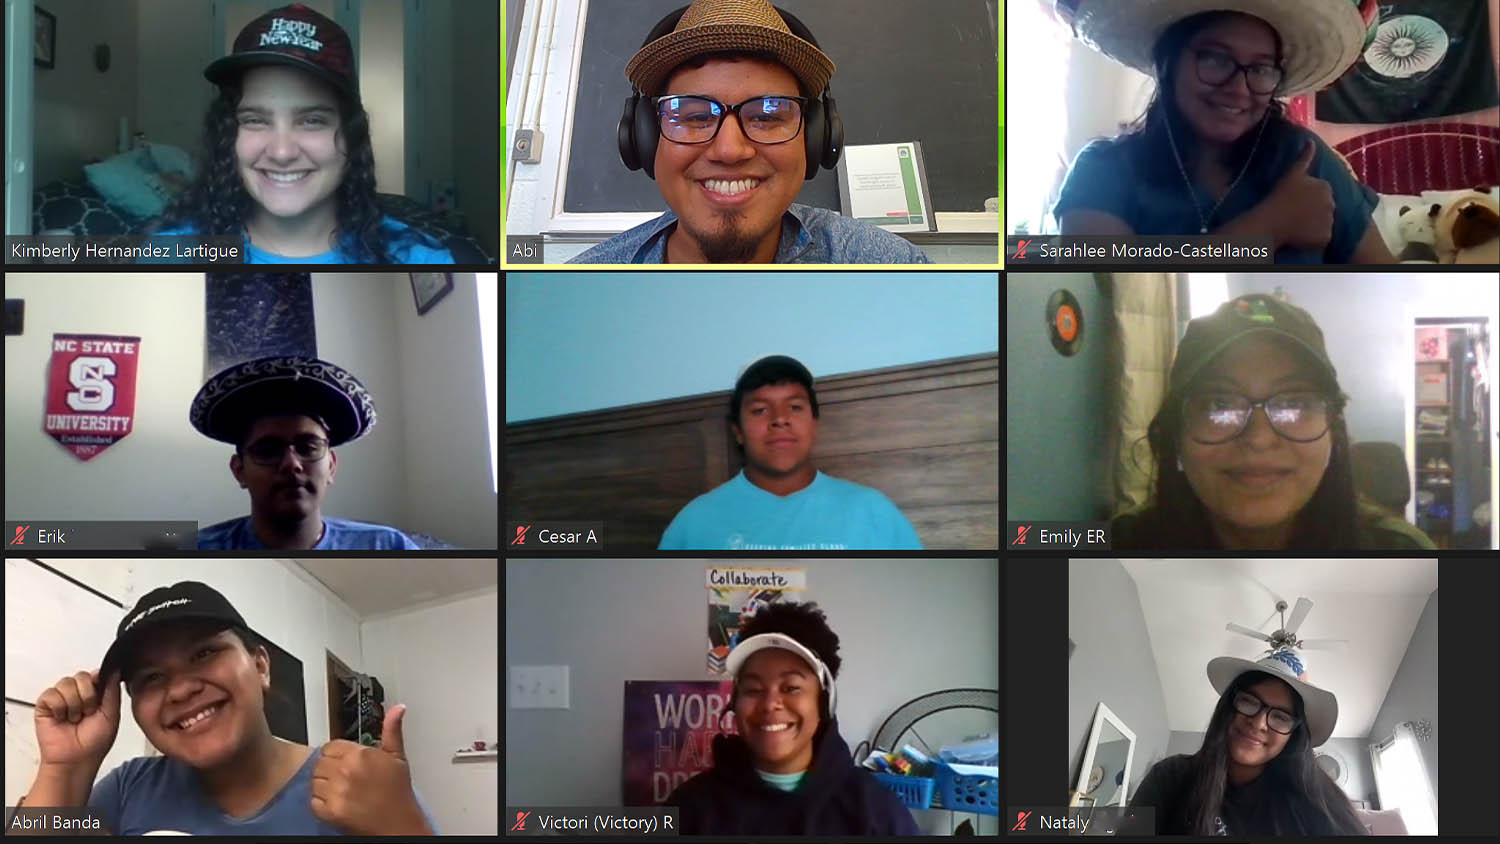 A screenshot of a Zoom call with nine participants, all wearing hats